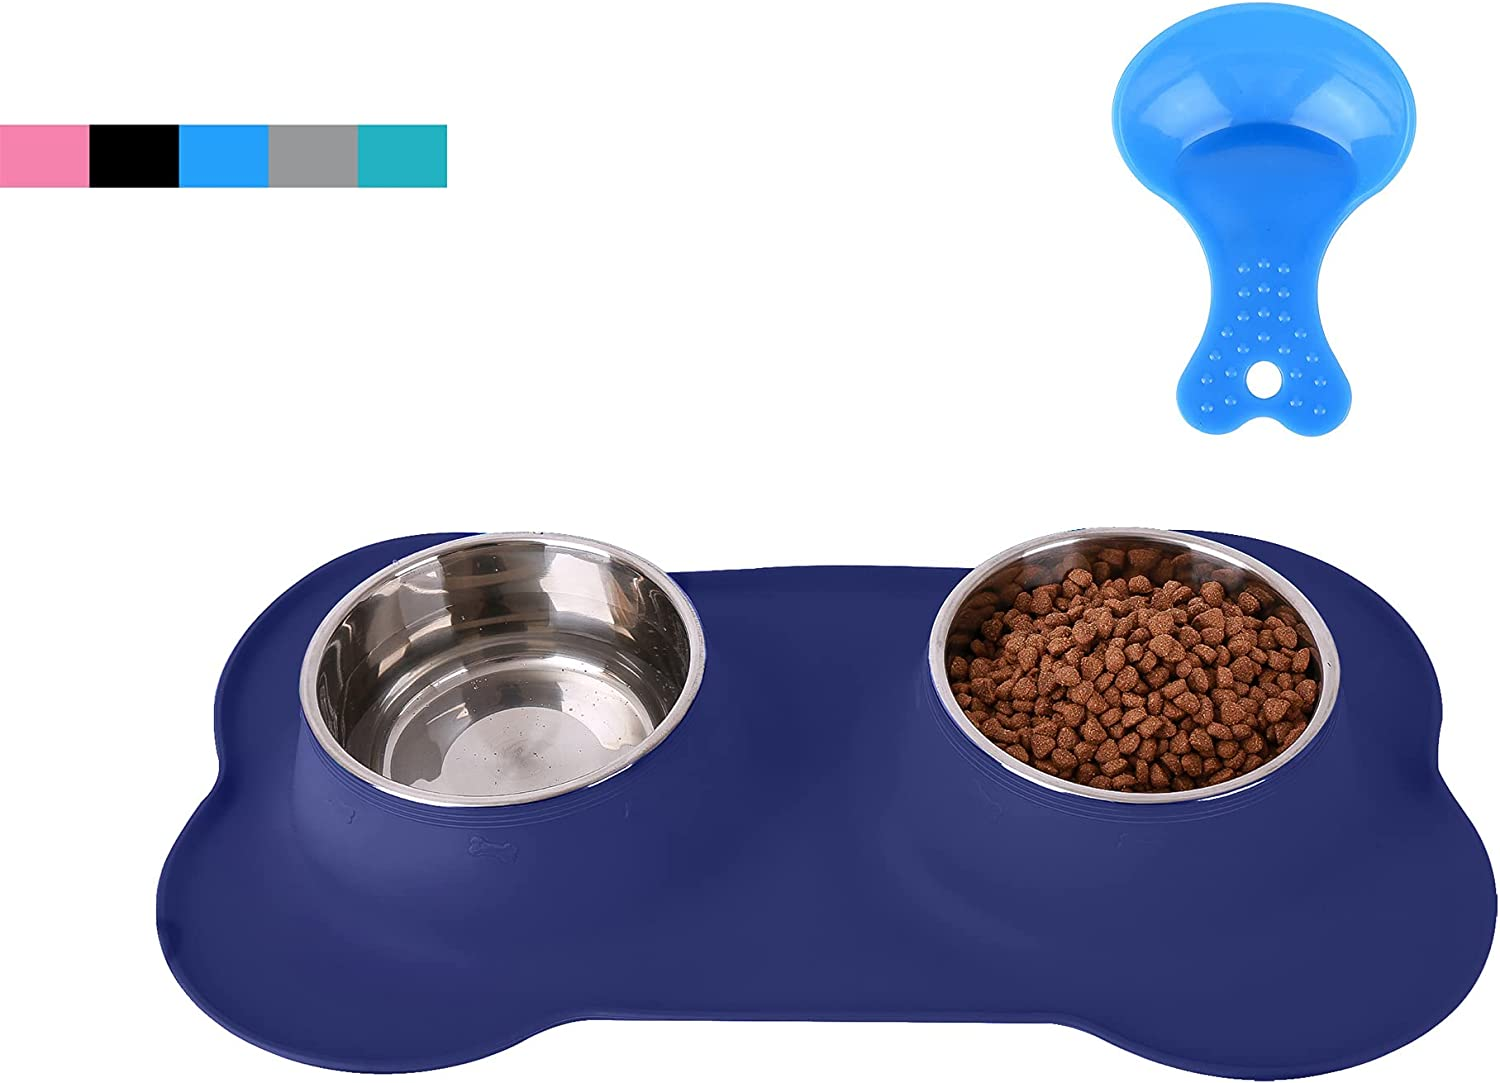 Hubulk Pet Dog Bowls 2 Stainless Steel Dog Bowl with No Spill Non-Skid Silicone Mat + Pet Food Scoop Water and Food Feeder Bowls for Feeding Small Medium Large Dogs Cats Puppies (M, Navy Blue)